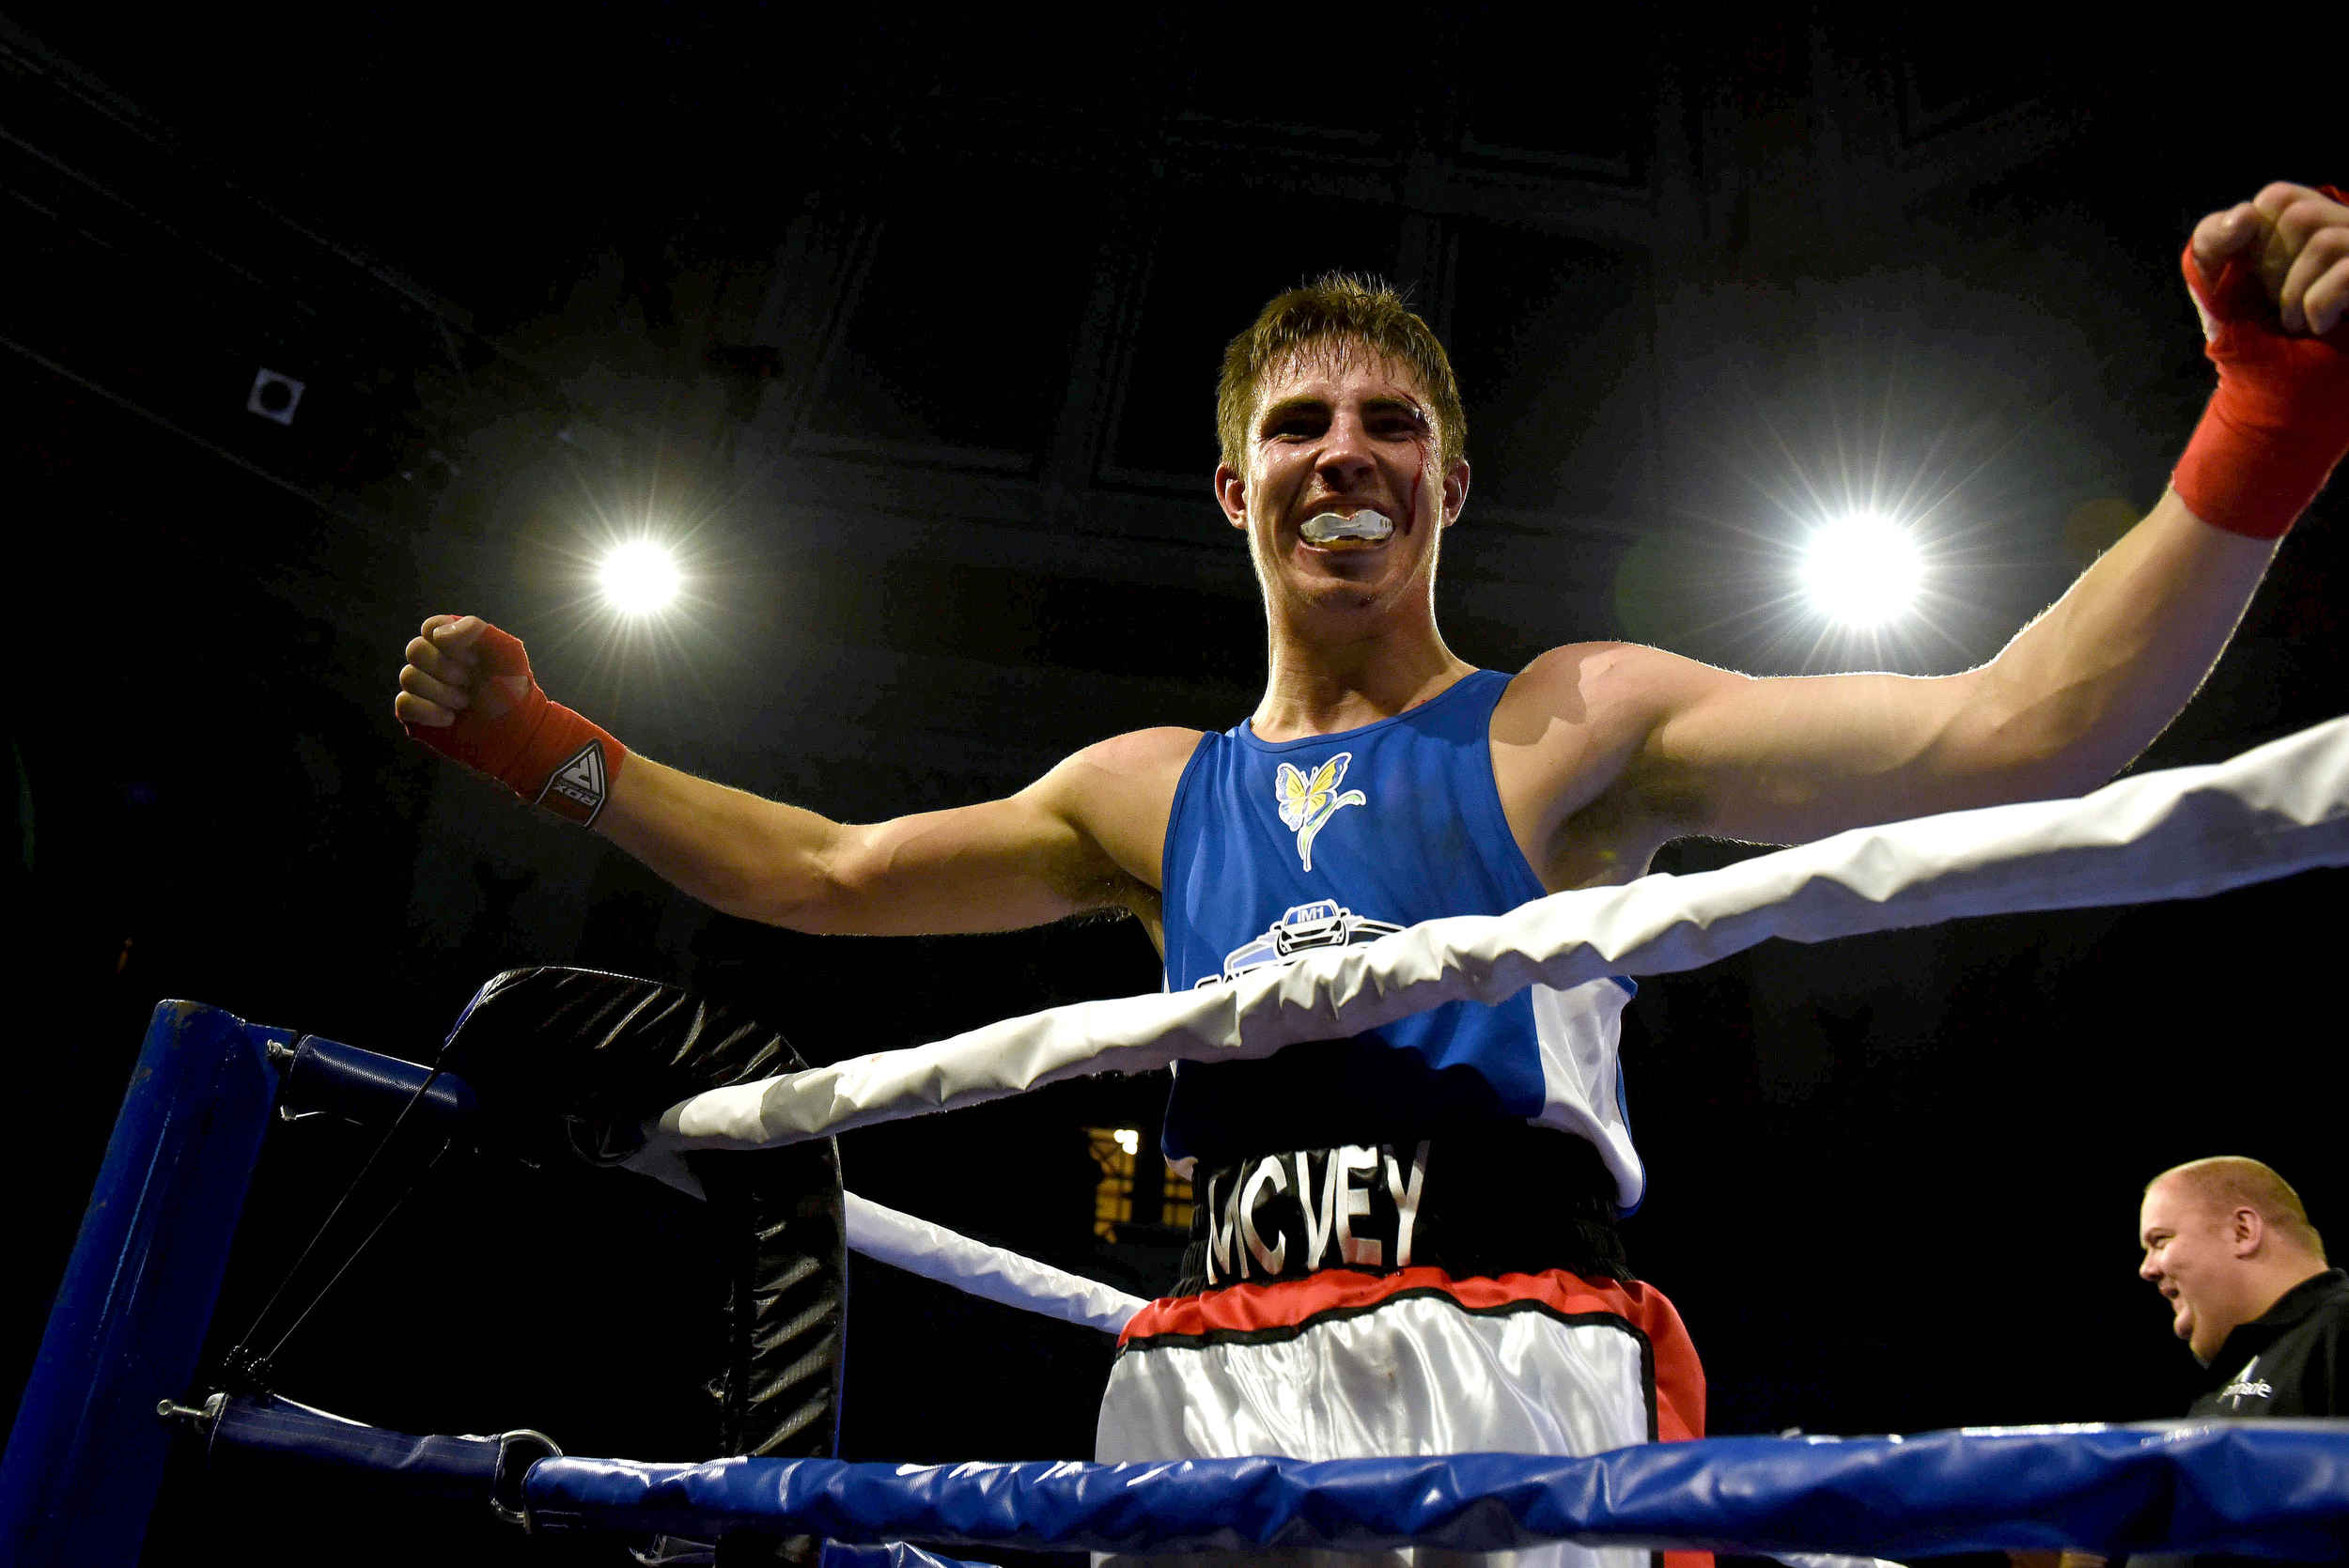 Scott McVey wins a bout in the 2018 'Thriller in the Villa' charity boxing night at the Villa Marina